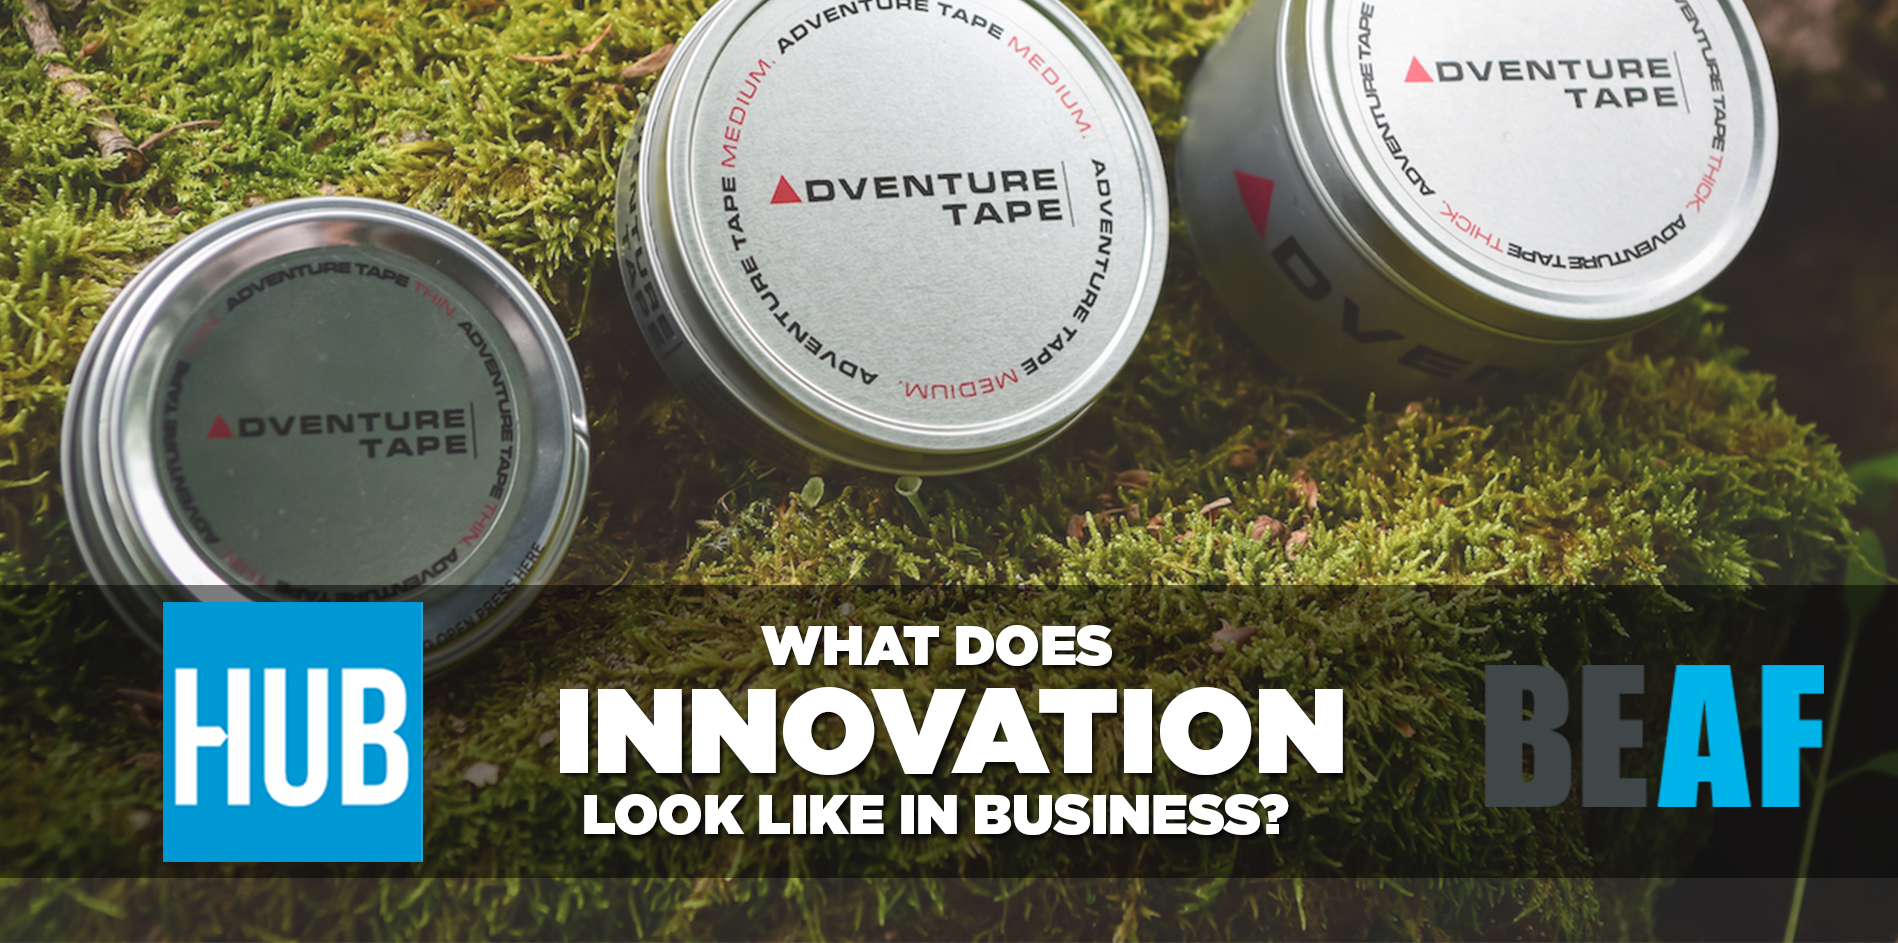 What does innovation look like in business?